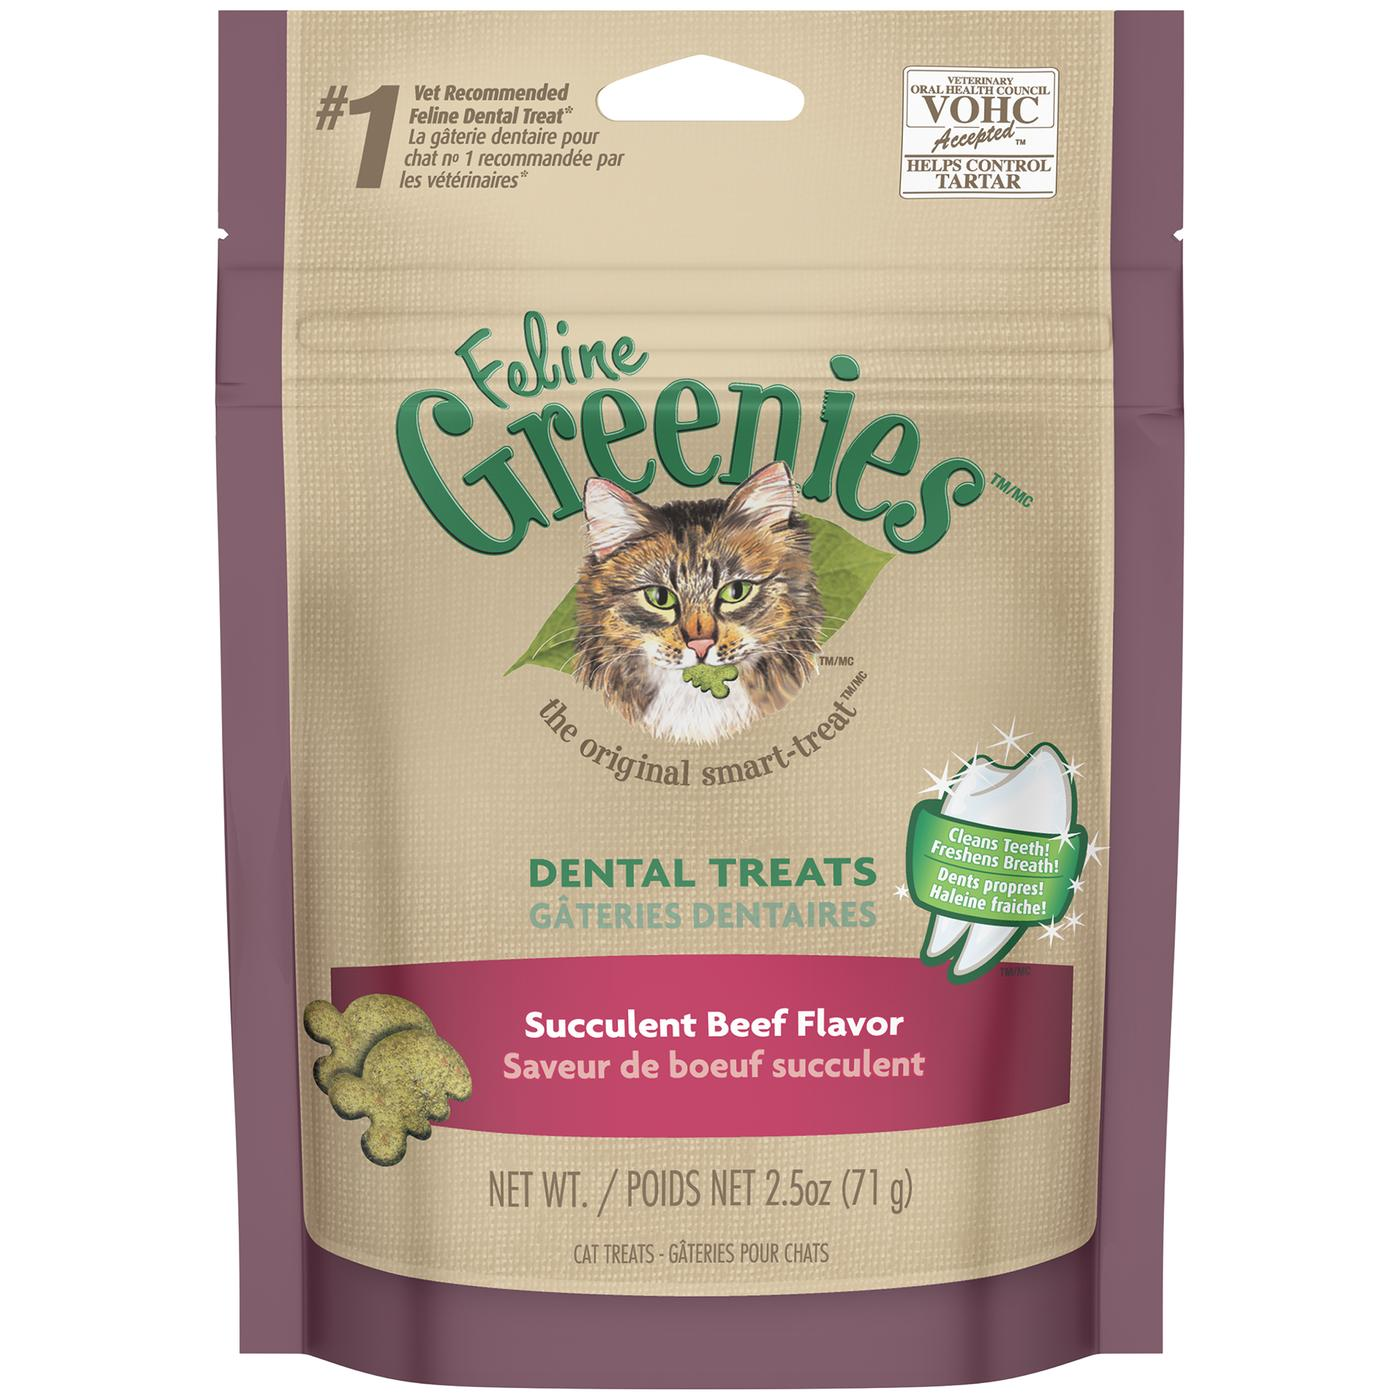 Feline Greenies Dental Treats For Cats Succulent Beef Flavor 2.5 Oz.